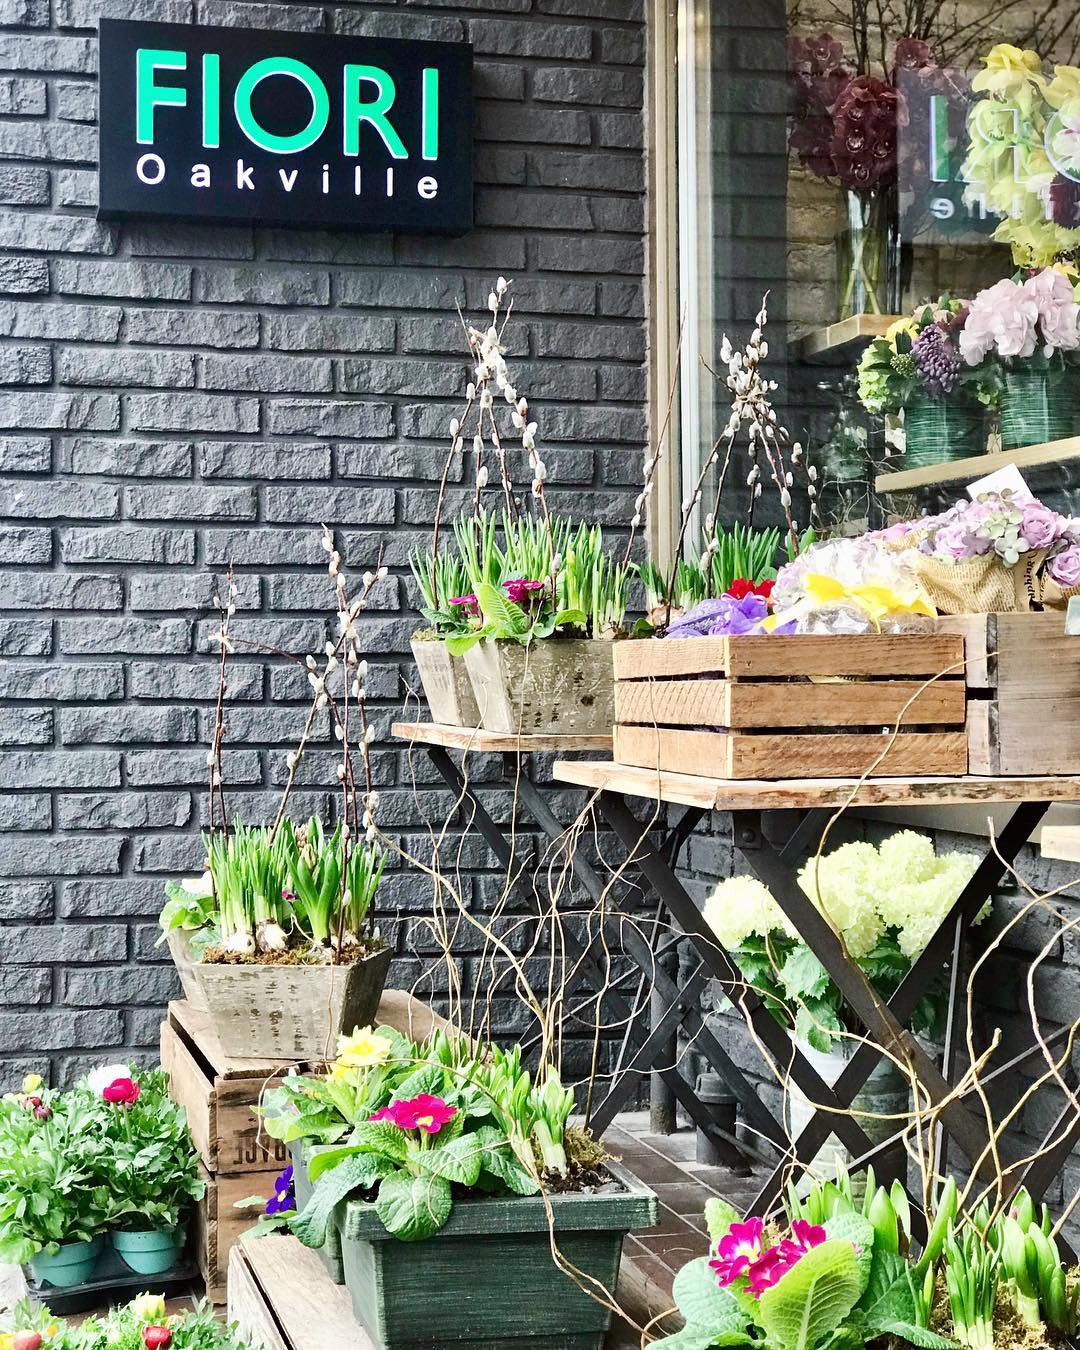 We are a charming Boutique Flower Store voted best florist